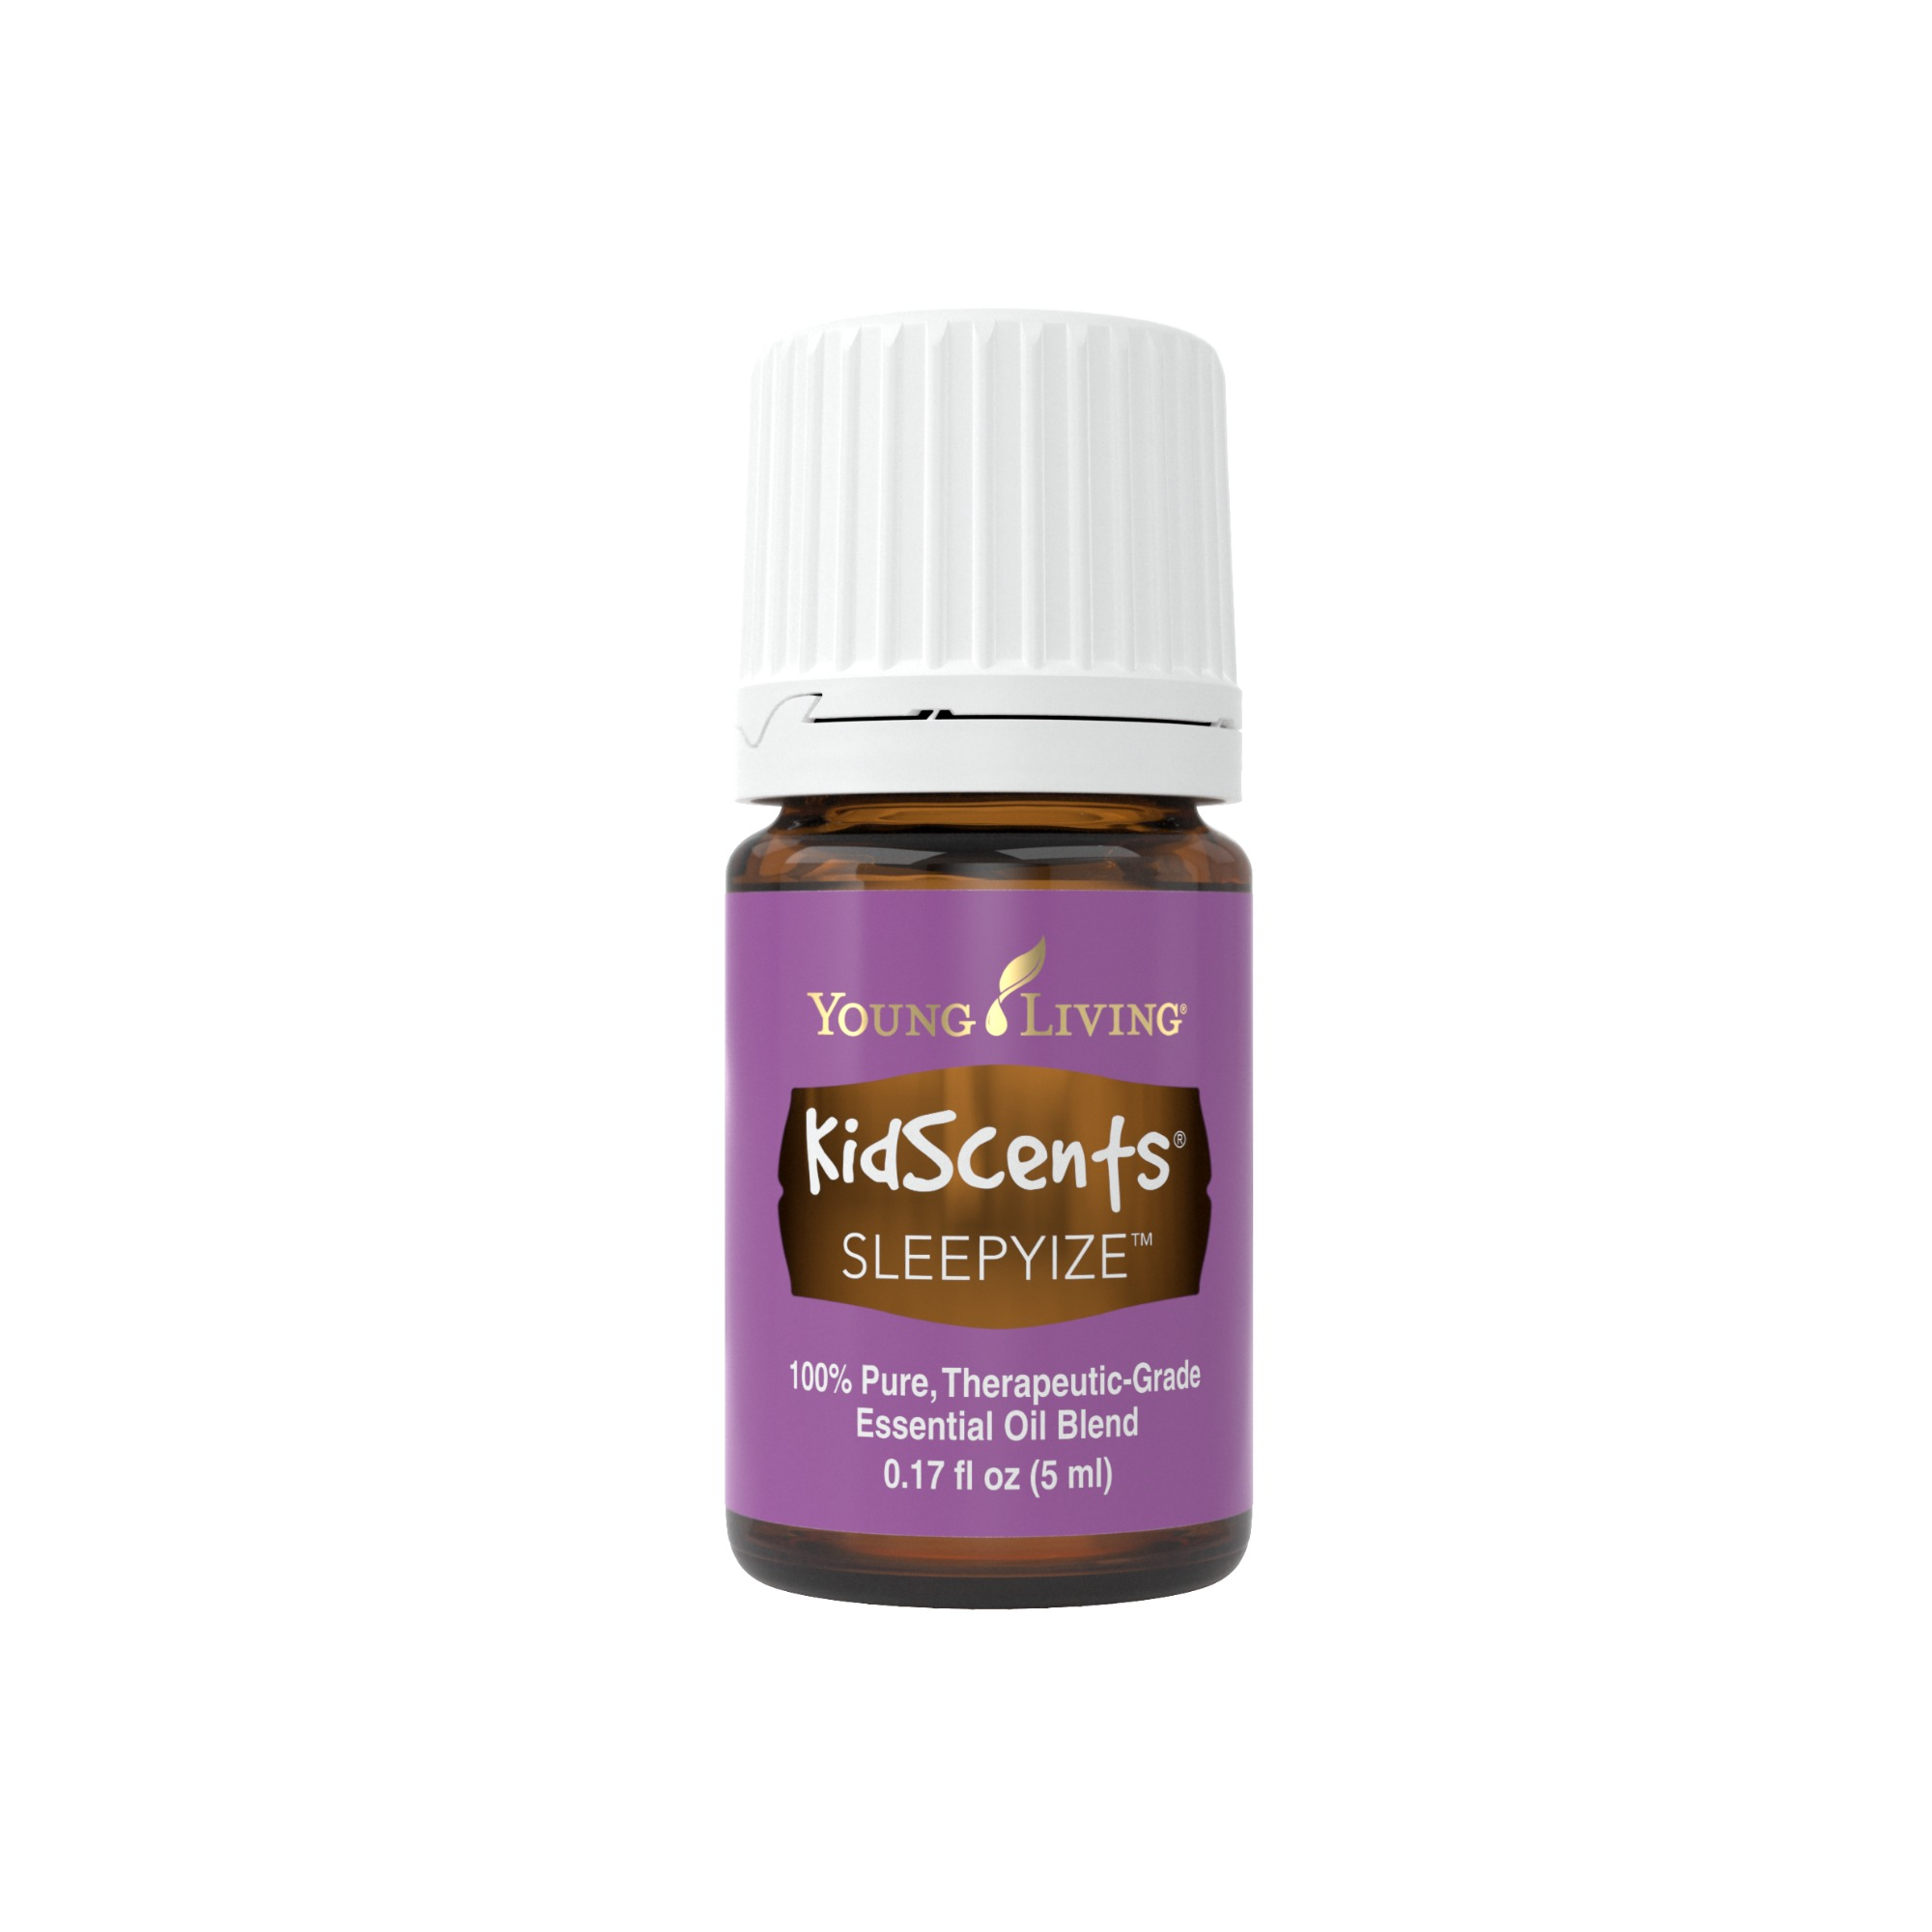 SLEEPYIZE ESSENTIAL OIL    Sometimes kids need a little extra support when it comes to sleeping throughout the night, or resting well during nap time. That's why SleepyIze is a perfect blend to help your child's sleeping patterns! Diffuse this oil in their bedroom, or apply topically on the feet and spine. Since it's pre-diluted, it's great for sensitive skin.   Click here   to learn more about this product.